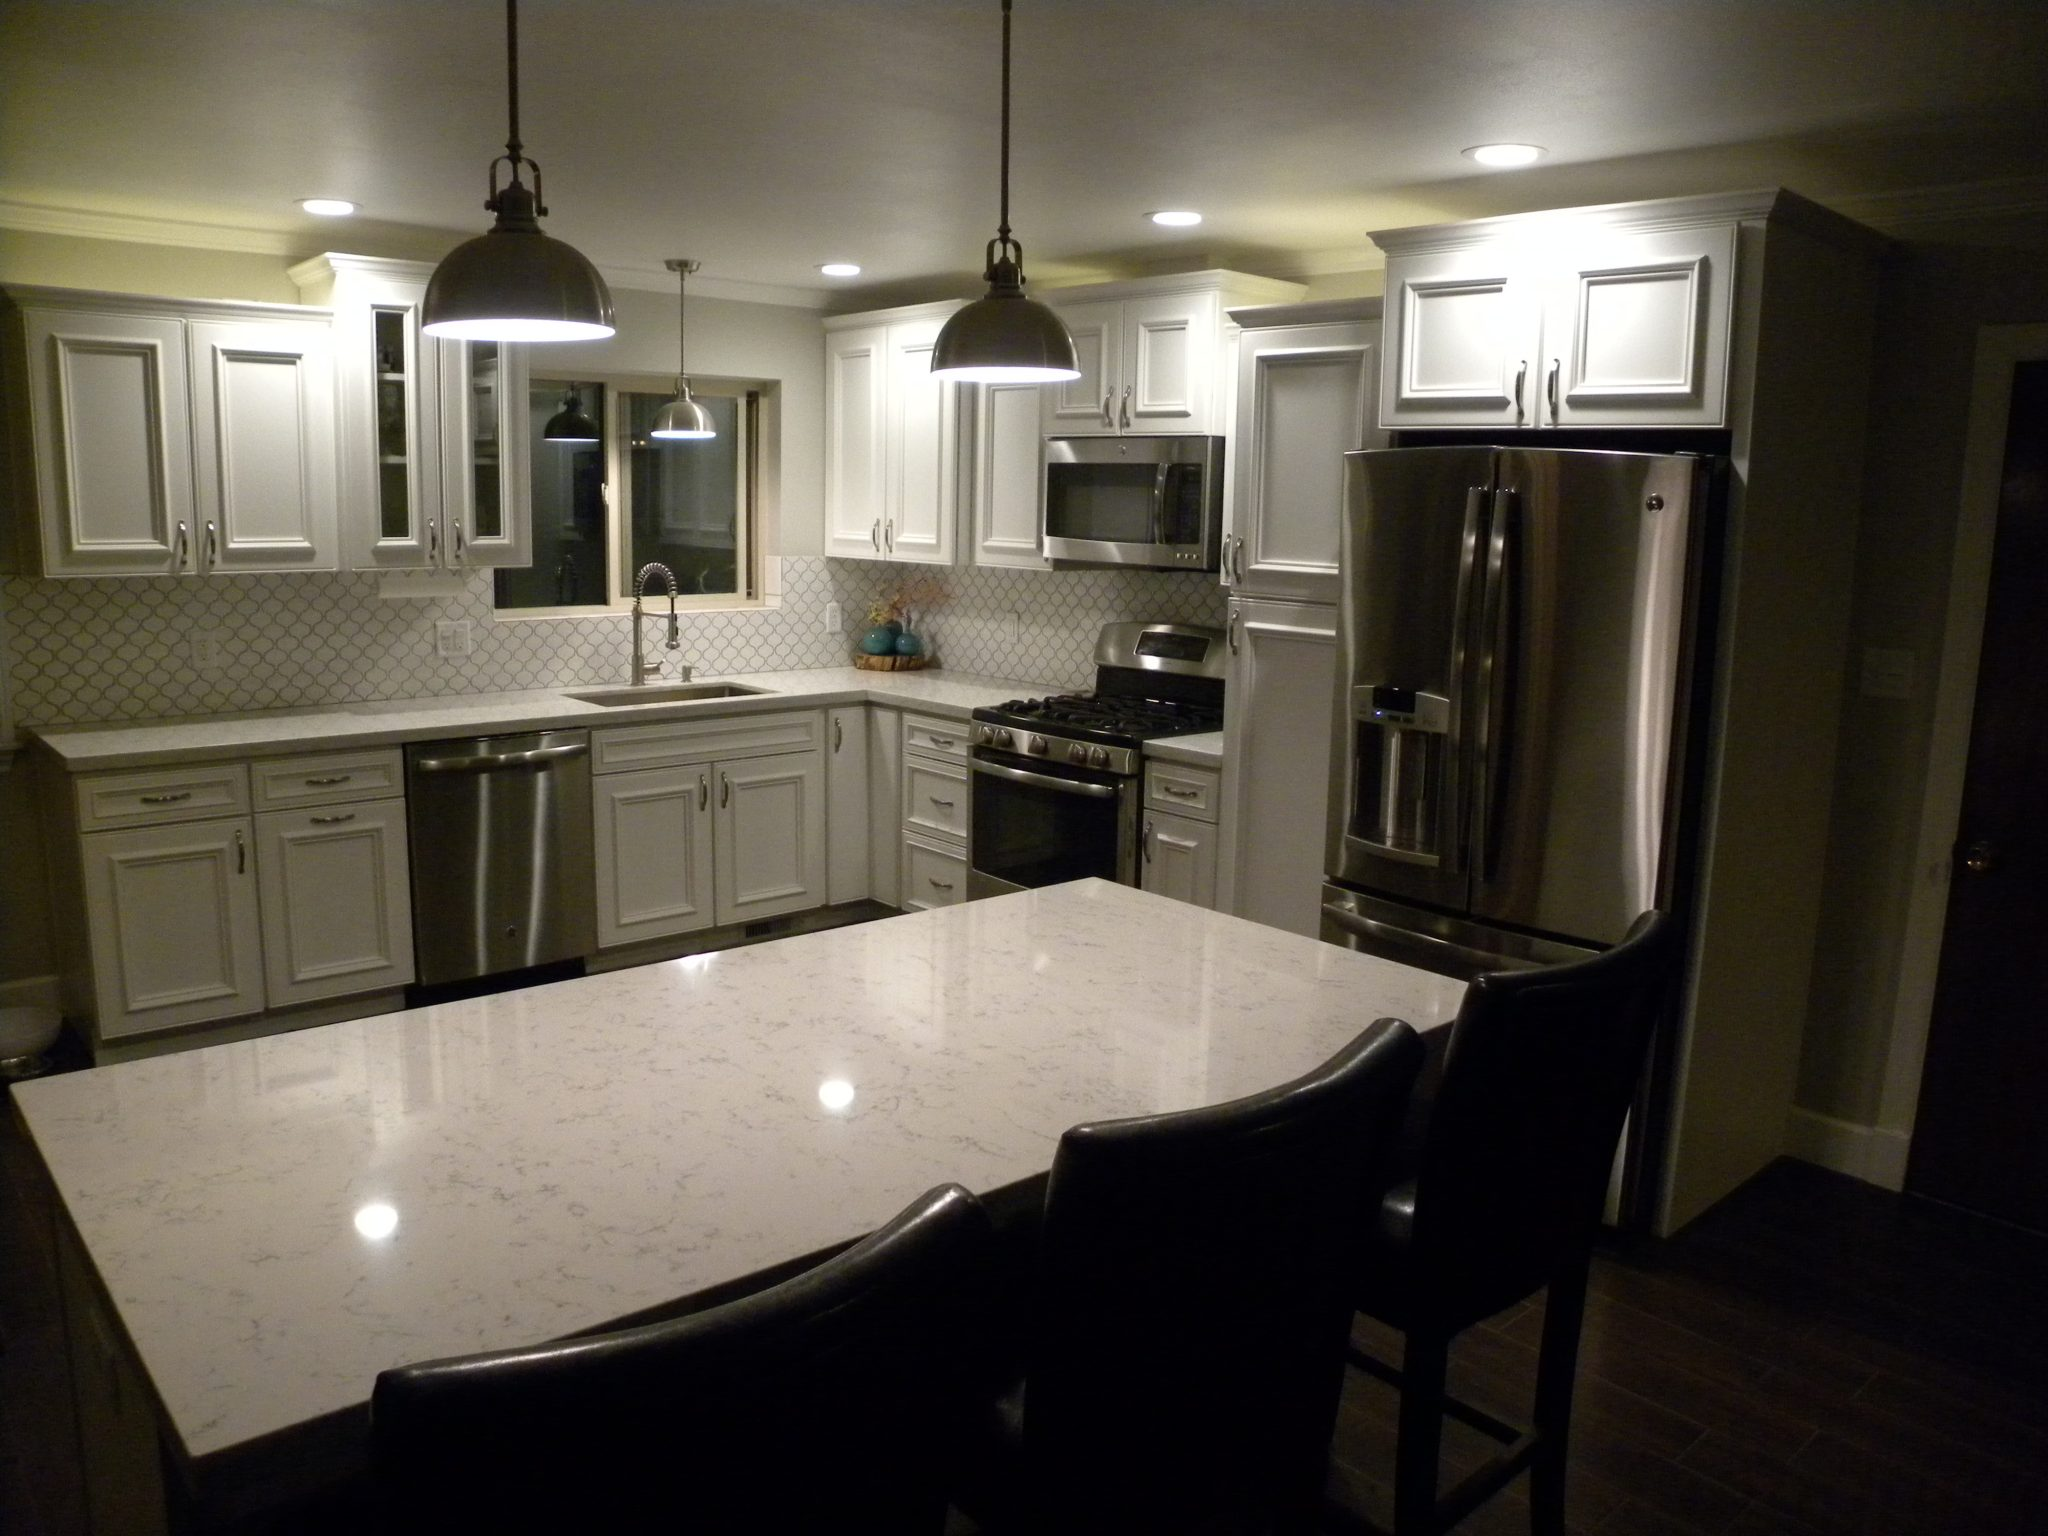 Interior shot of a newly remodeled kitchen with white granite countertops, white wooden cabinets, and matching white trim